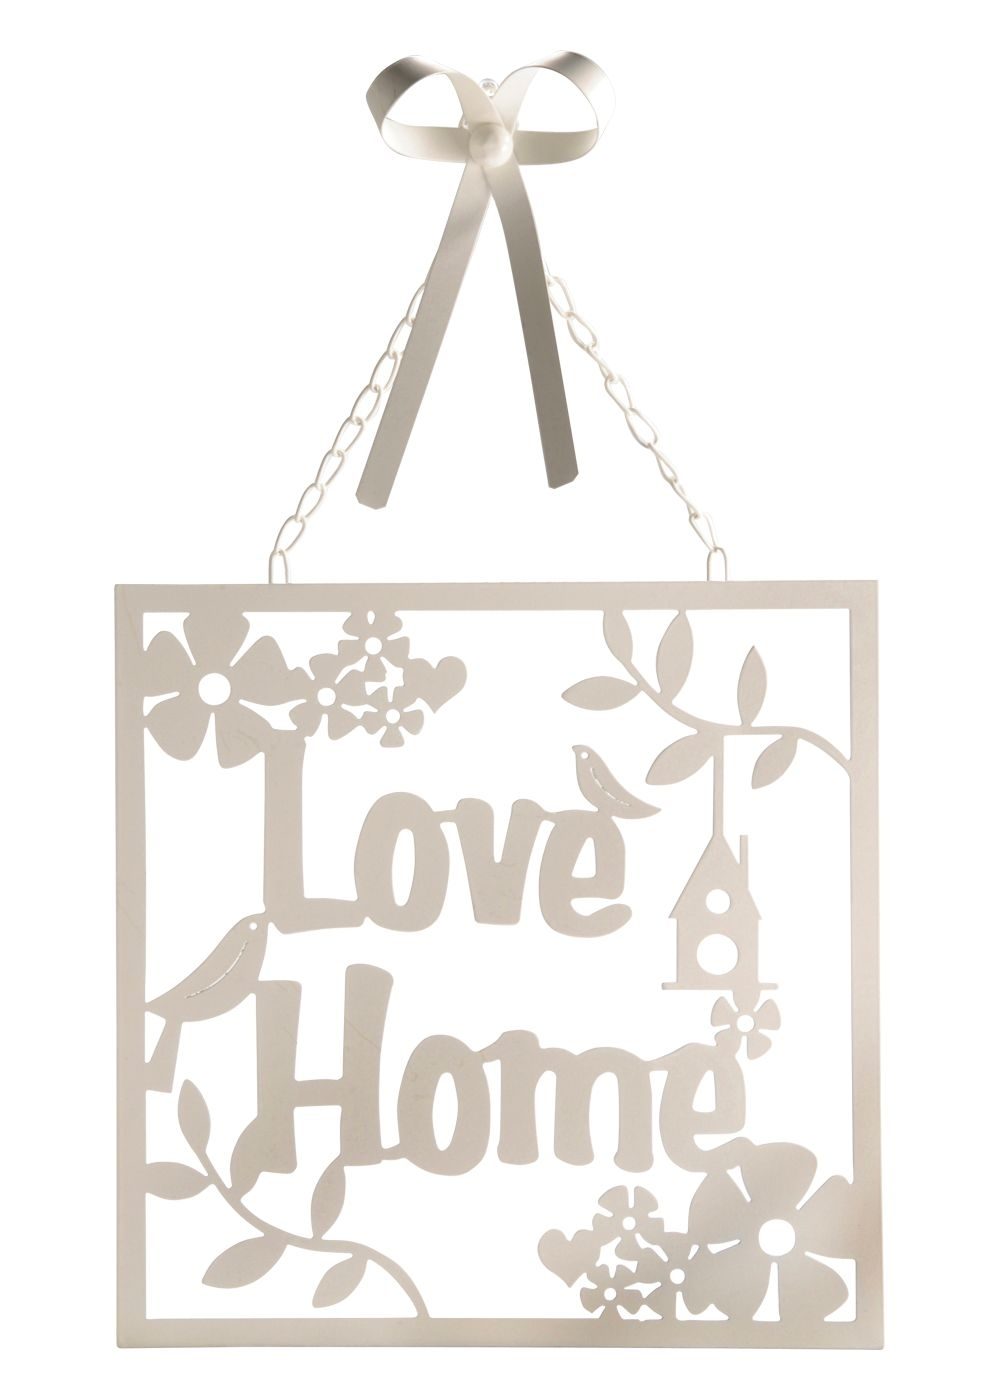 Matalan – Vintage Inspired Metal Wall Art | For The Home Regarding Most Recent Matalan Canvas Wall Art (View 4 of 15)